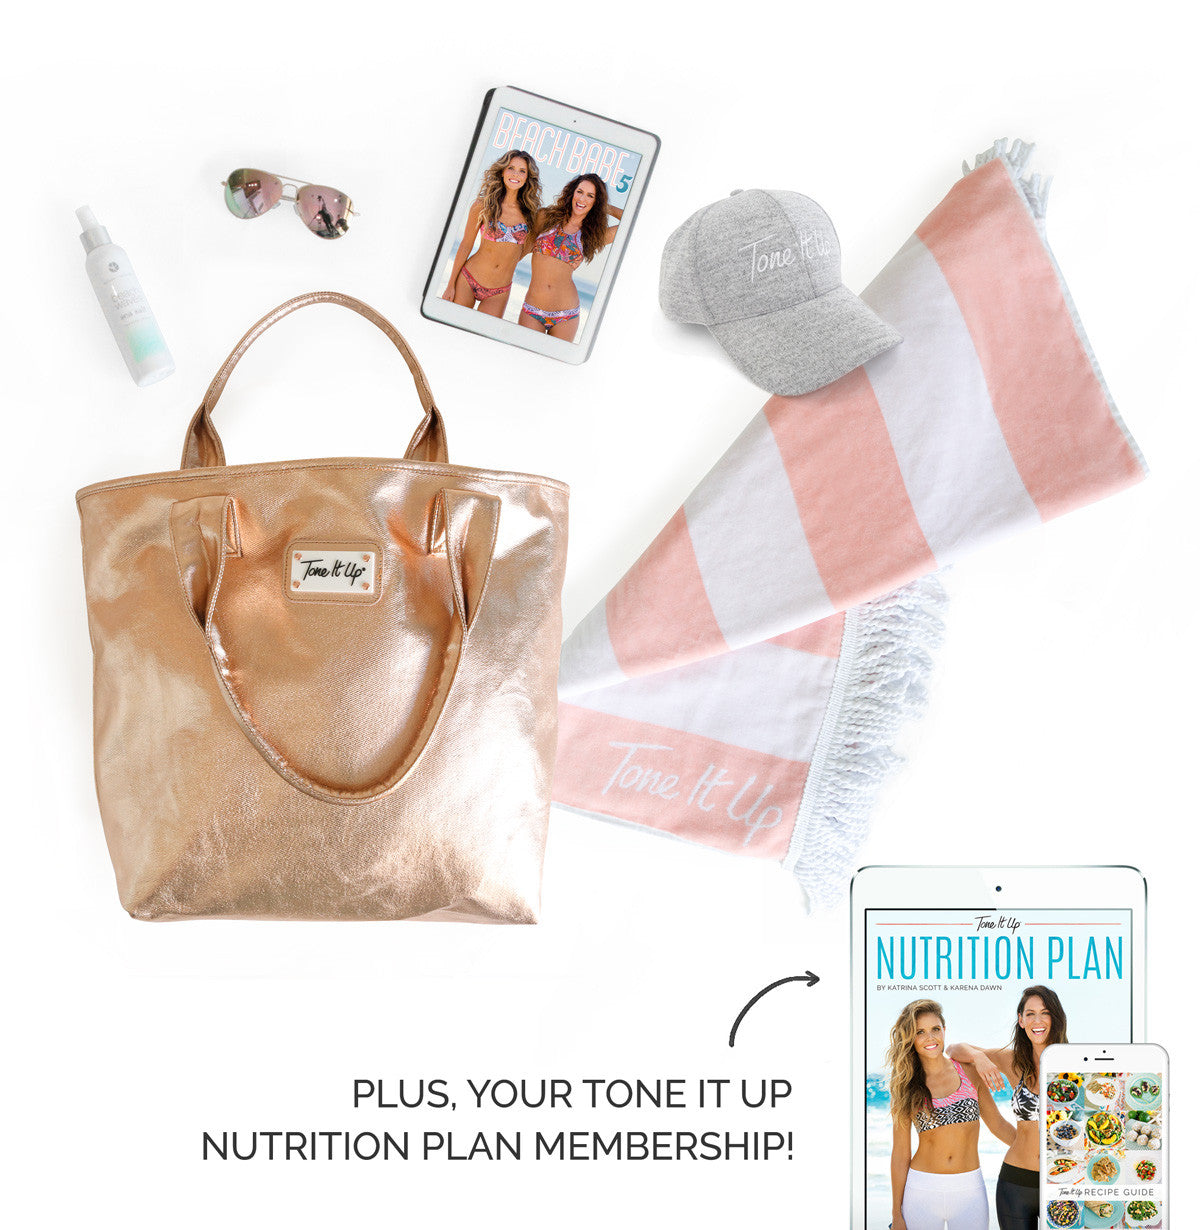 tone it up bikini series bundle